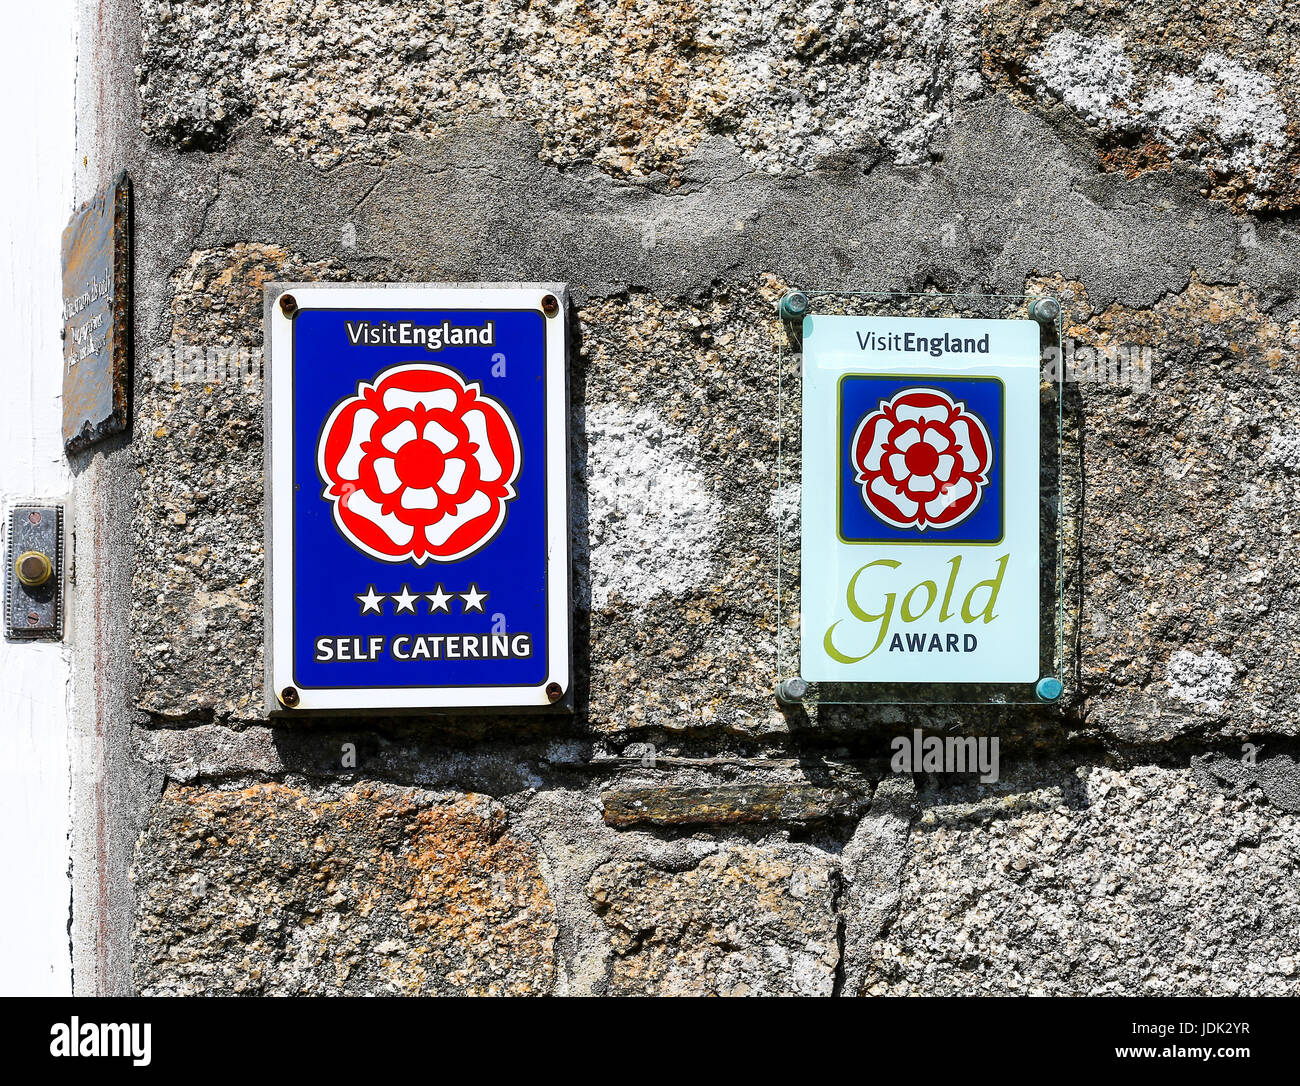 Visit England self catering signs, 4 star and gold award on a cottage wall at Hugh Town St. Mary's, Isles of Scilly, Stock Photo